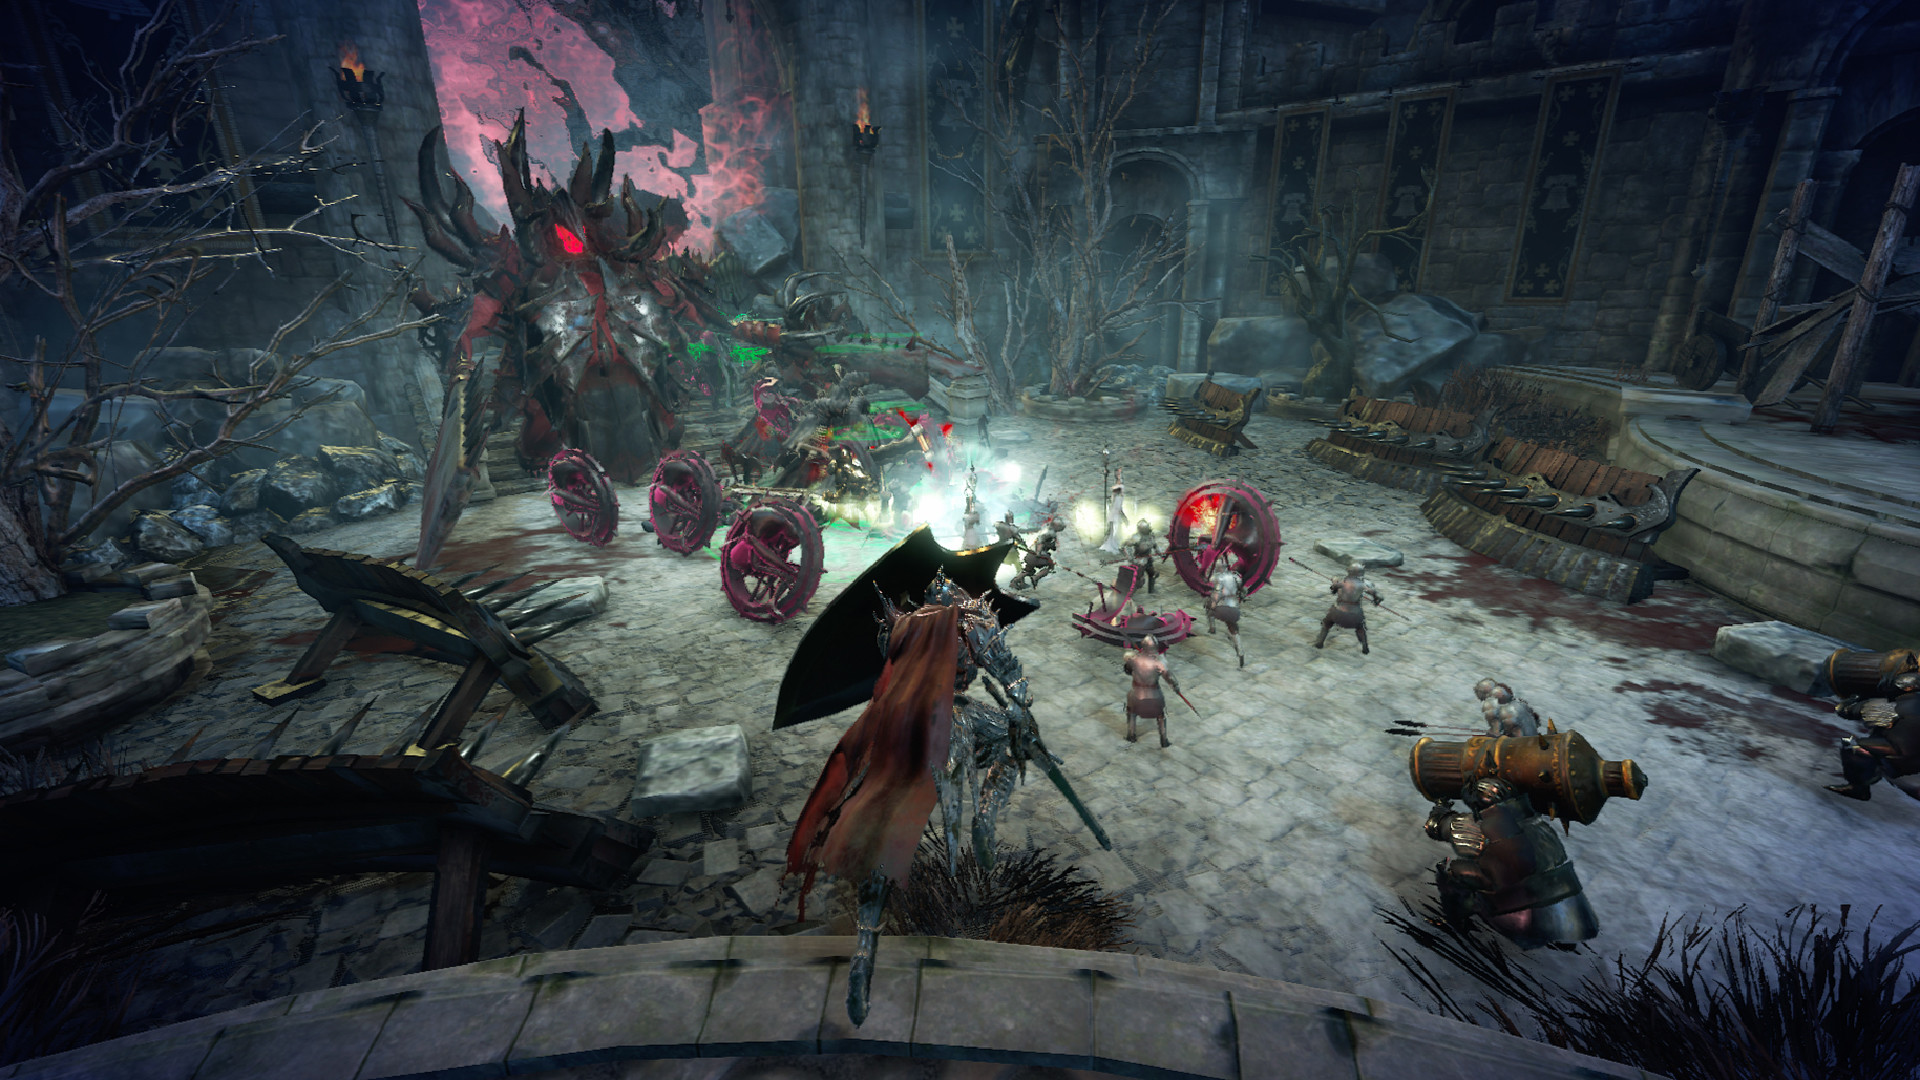 Co-op hoard defense Hell Warders out today